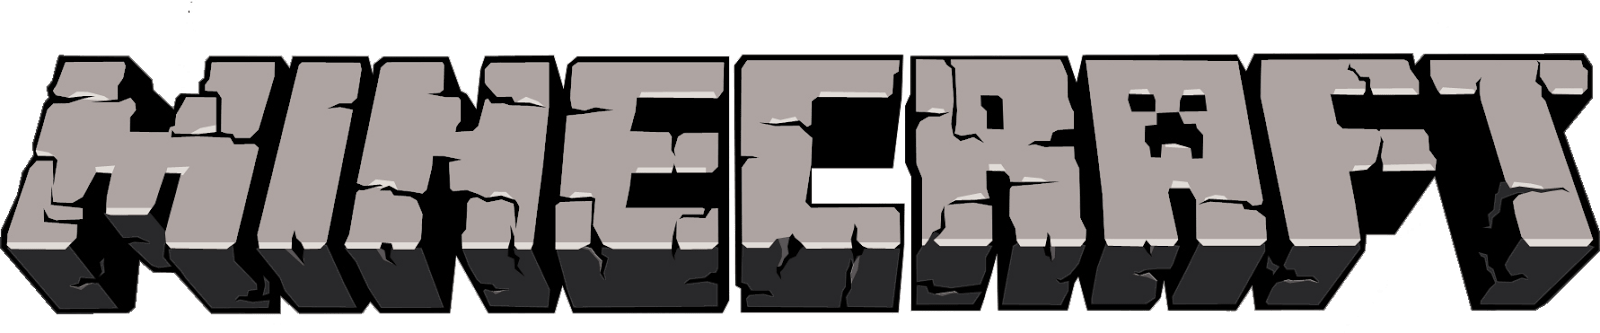 history-creeper-07-minecraft-logo